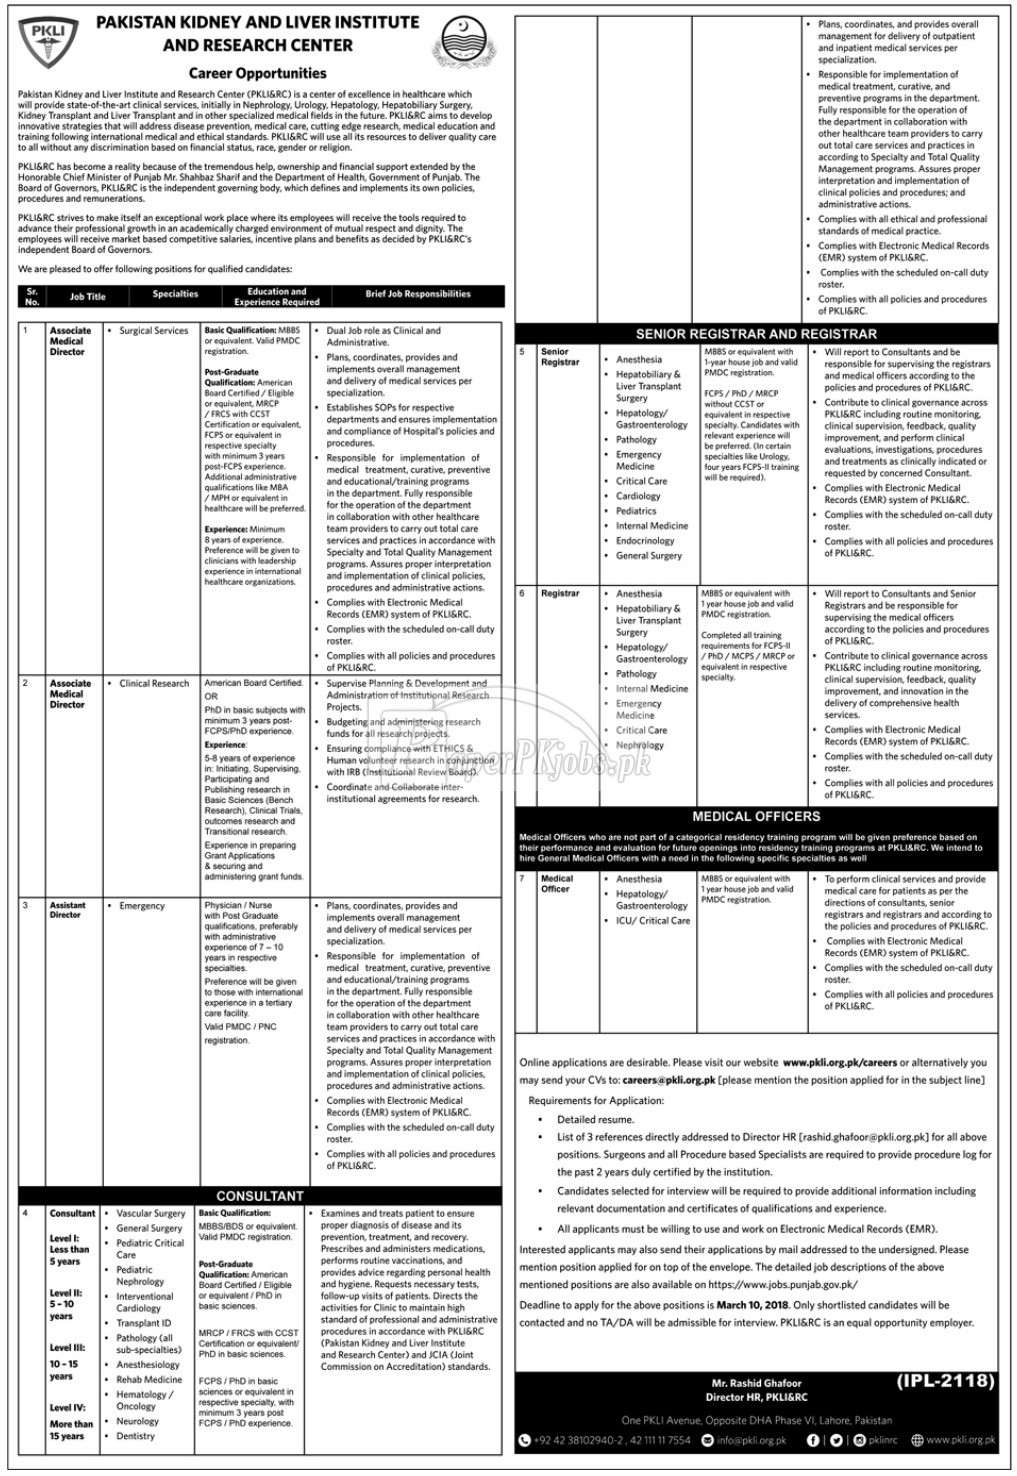 Pakistan Kidney and Liver Institute PKLI Jobs 2018